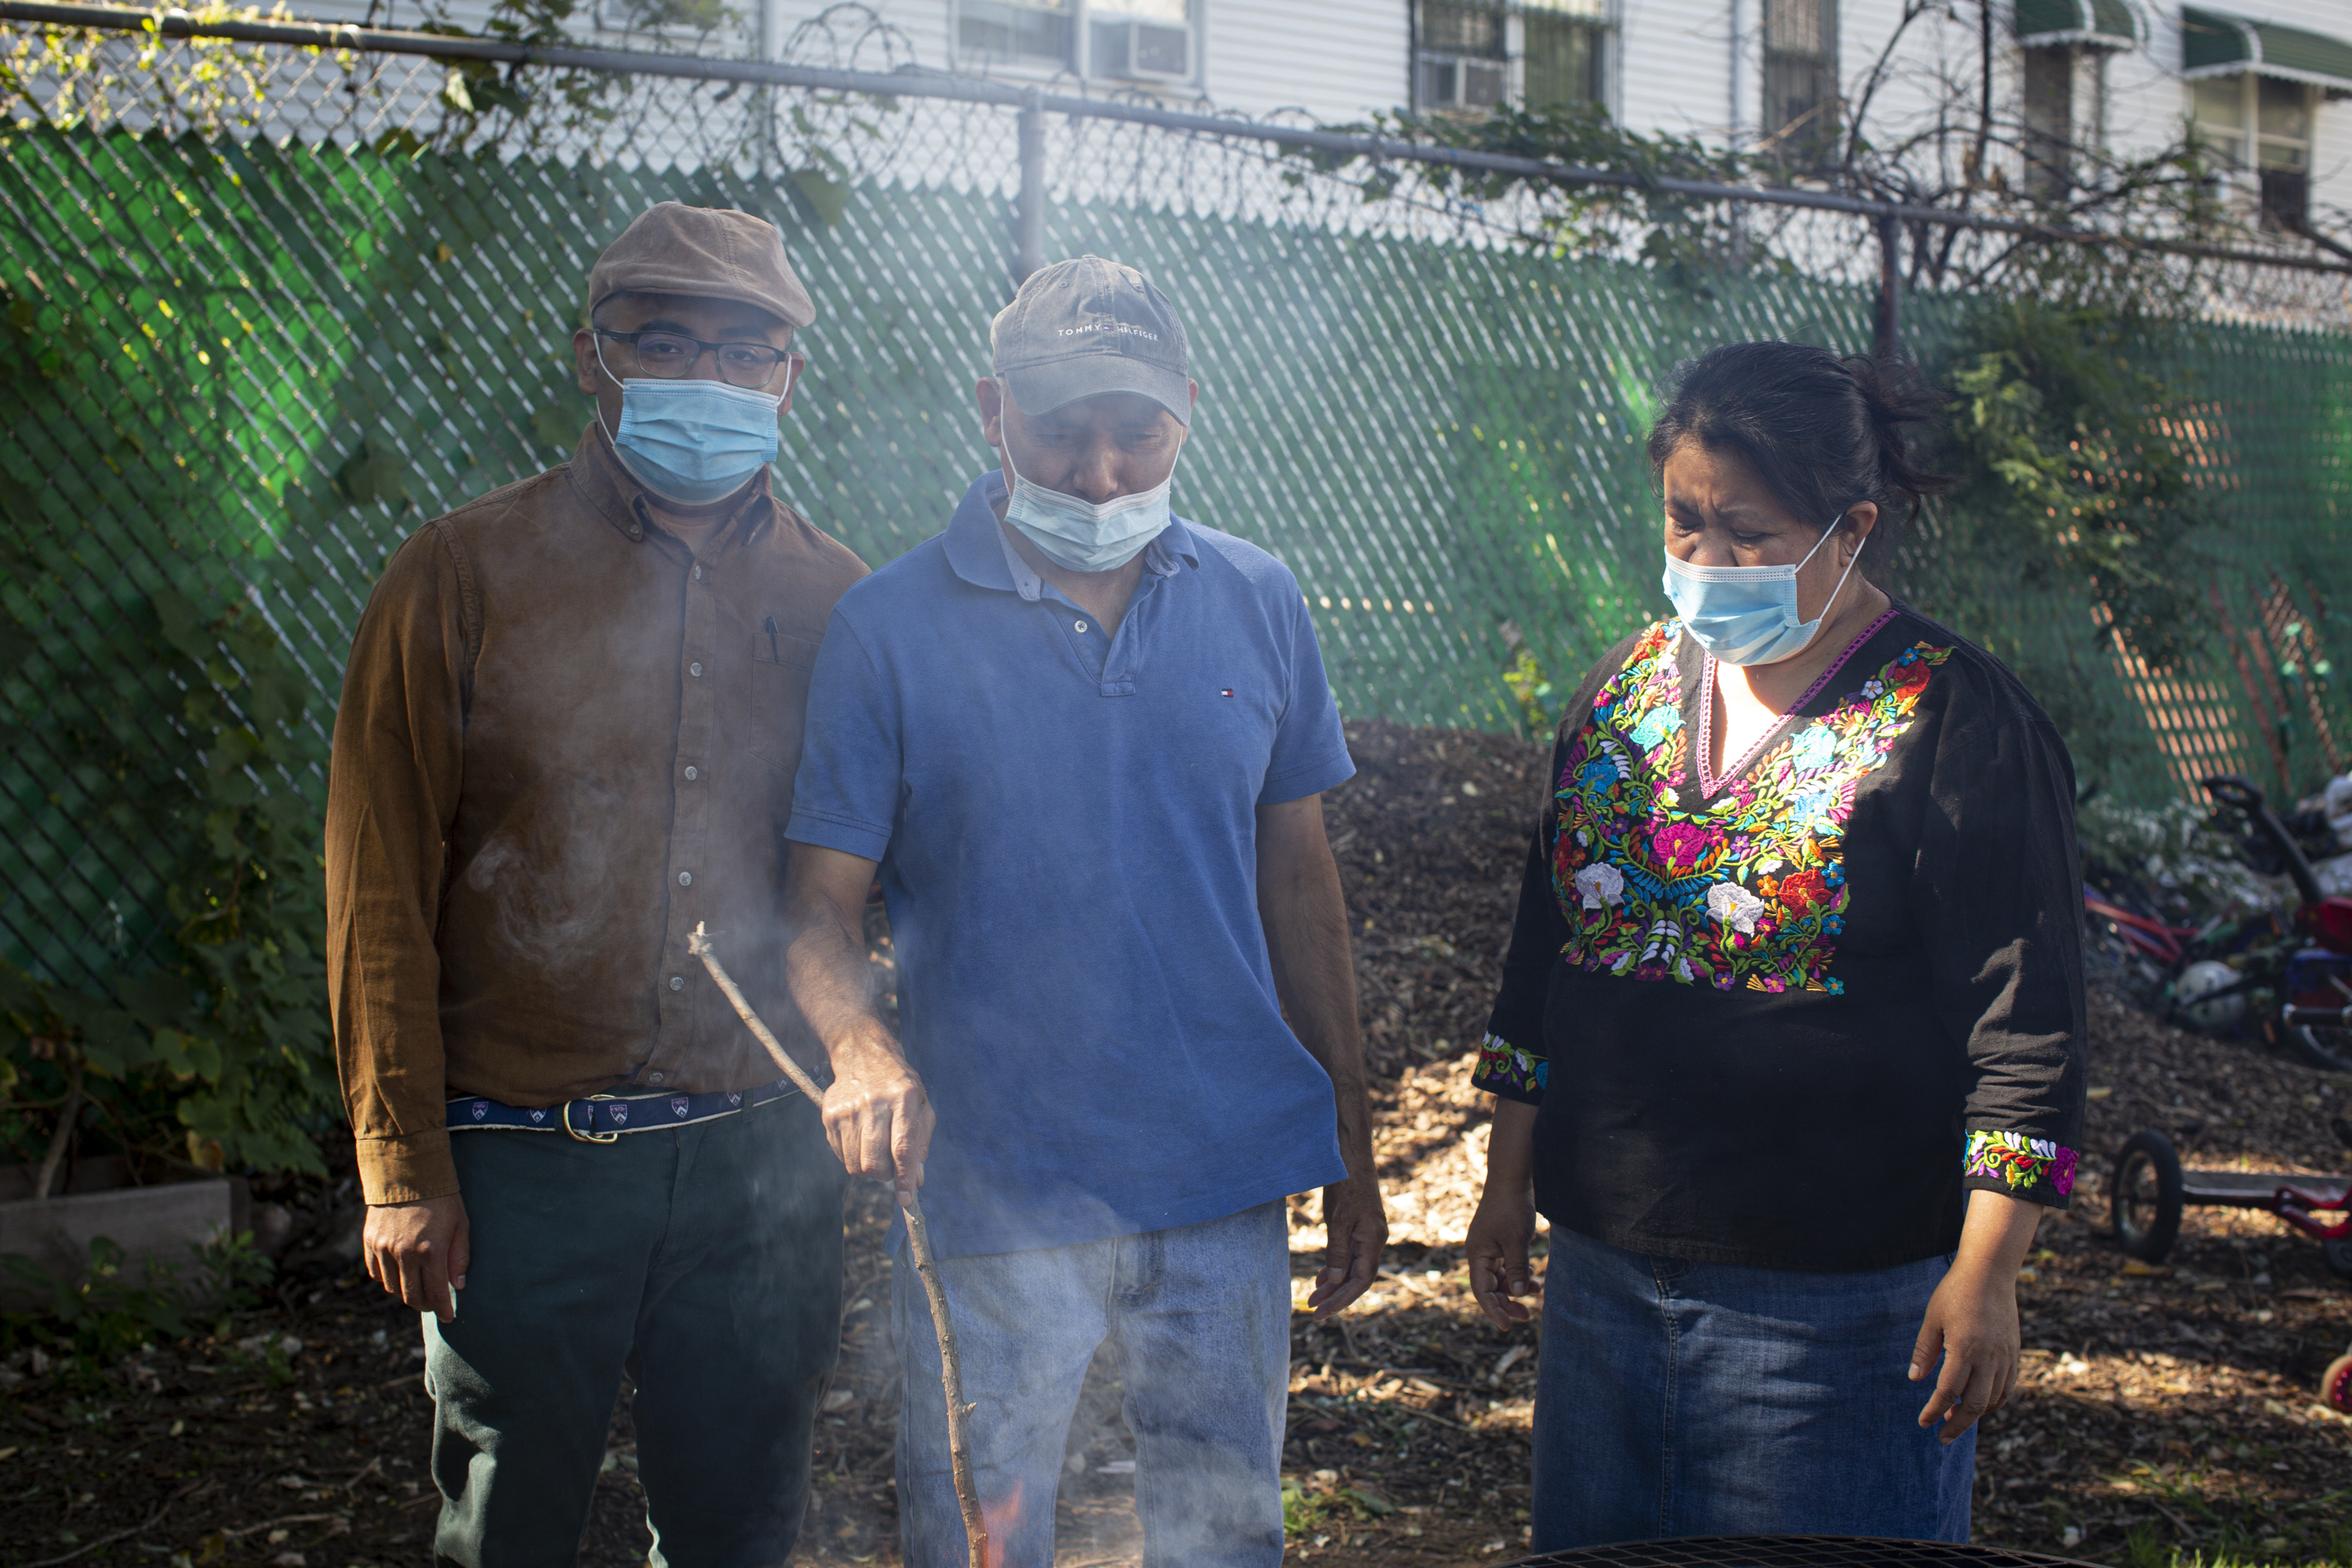 Marco, wearing a light brown shirt, jeans, and a hat, Antonio, wearing a light blue shirt, jeans, and a baseball cap, and Natalia, wearing an Indigenous Mexican embroidered shirt (black with flowers) and a long denim skirt, stand near the fire (out of frame). All three are wearing medical masks. Smoke comes out of the fire. The mounds of soil in the background reflect the morning sunlight. Photo by Cinthya Santos-Briones for Brewing Memories workshop, October 3, 2020.